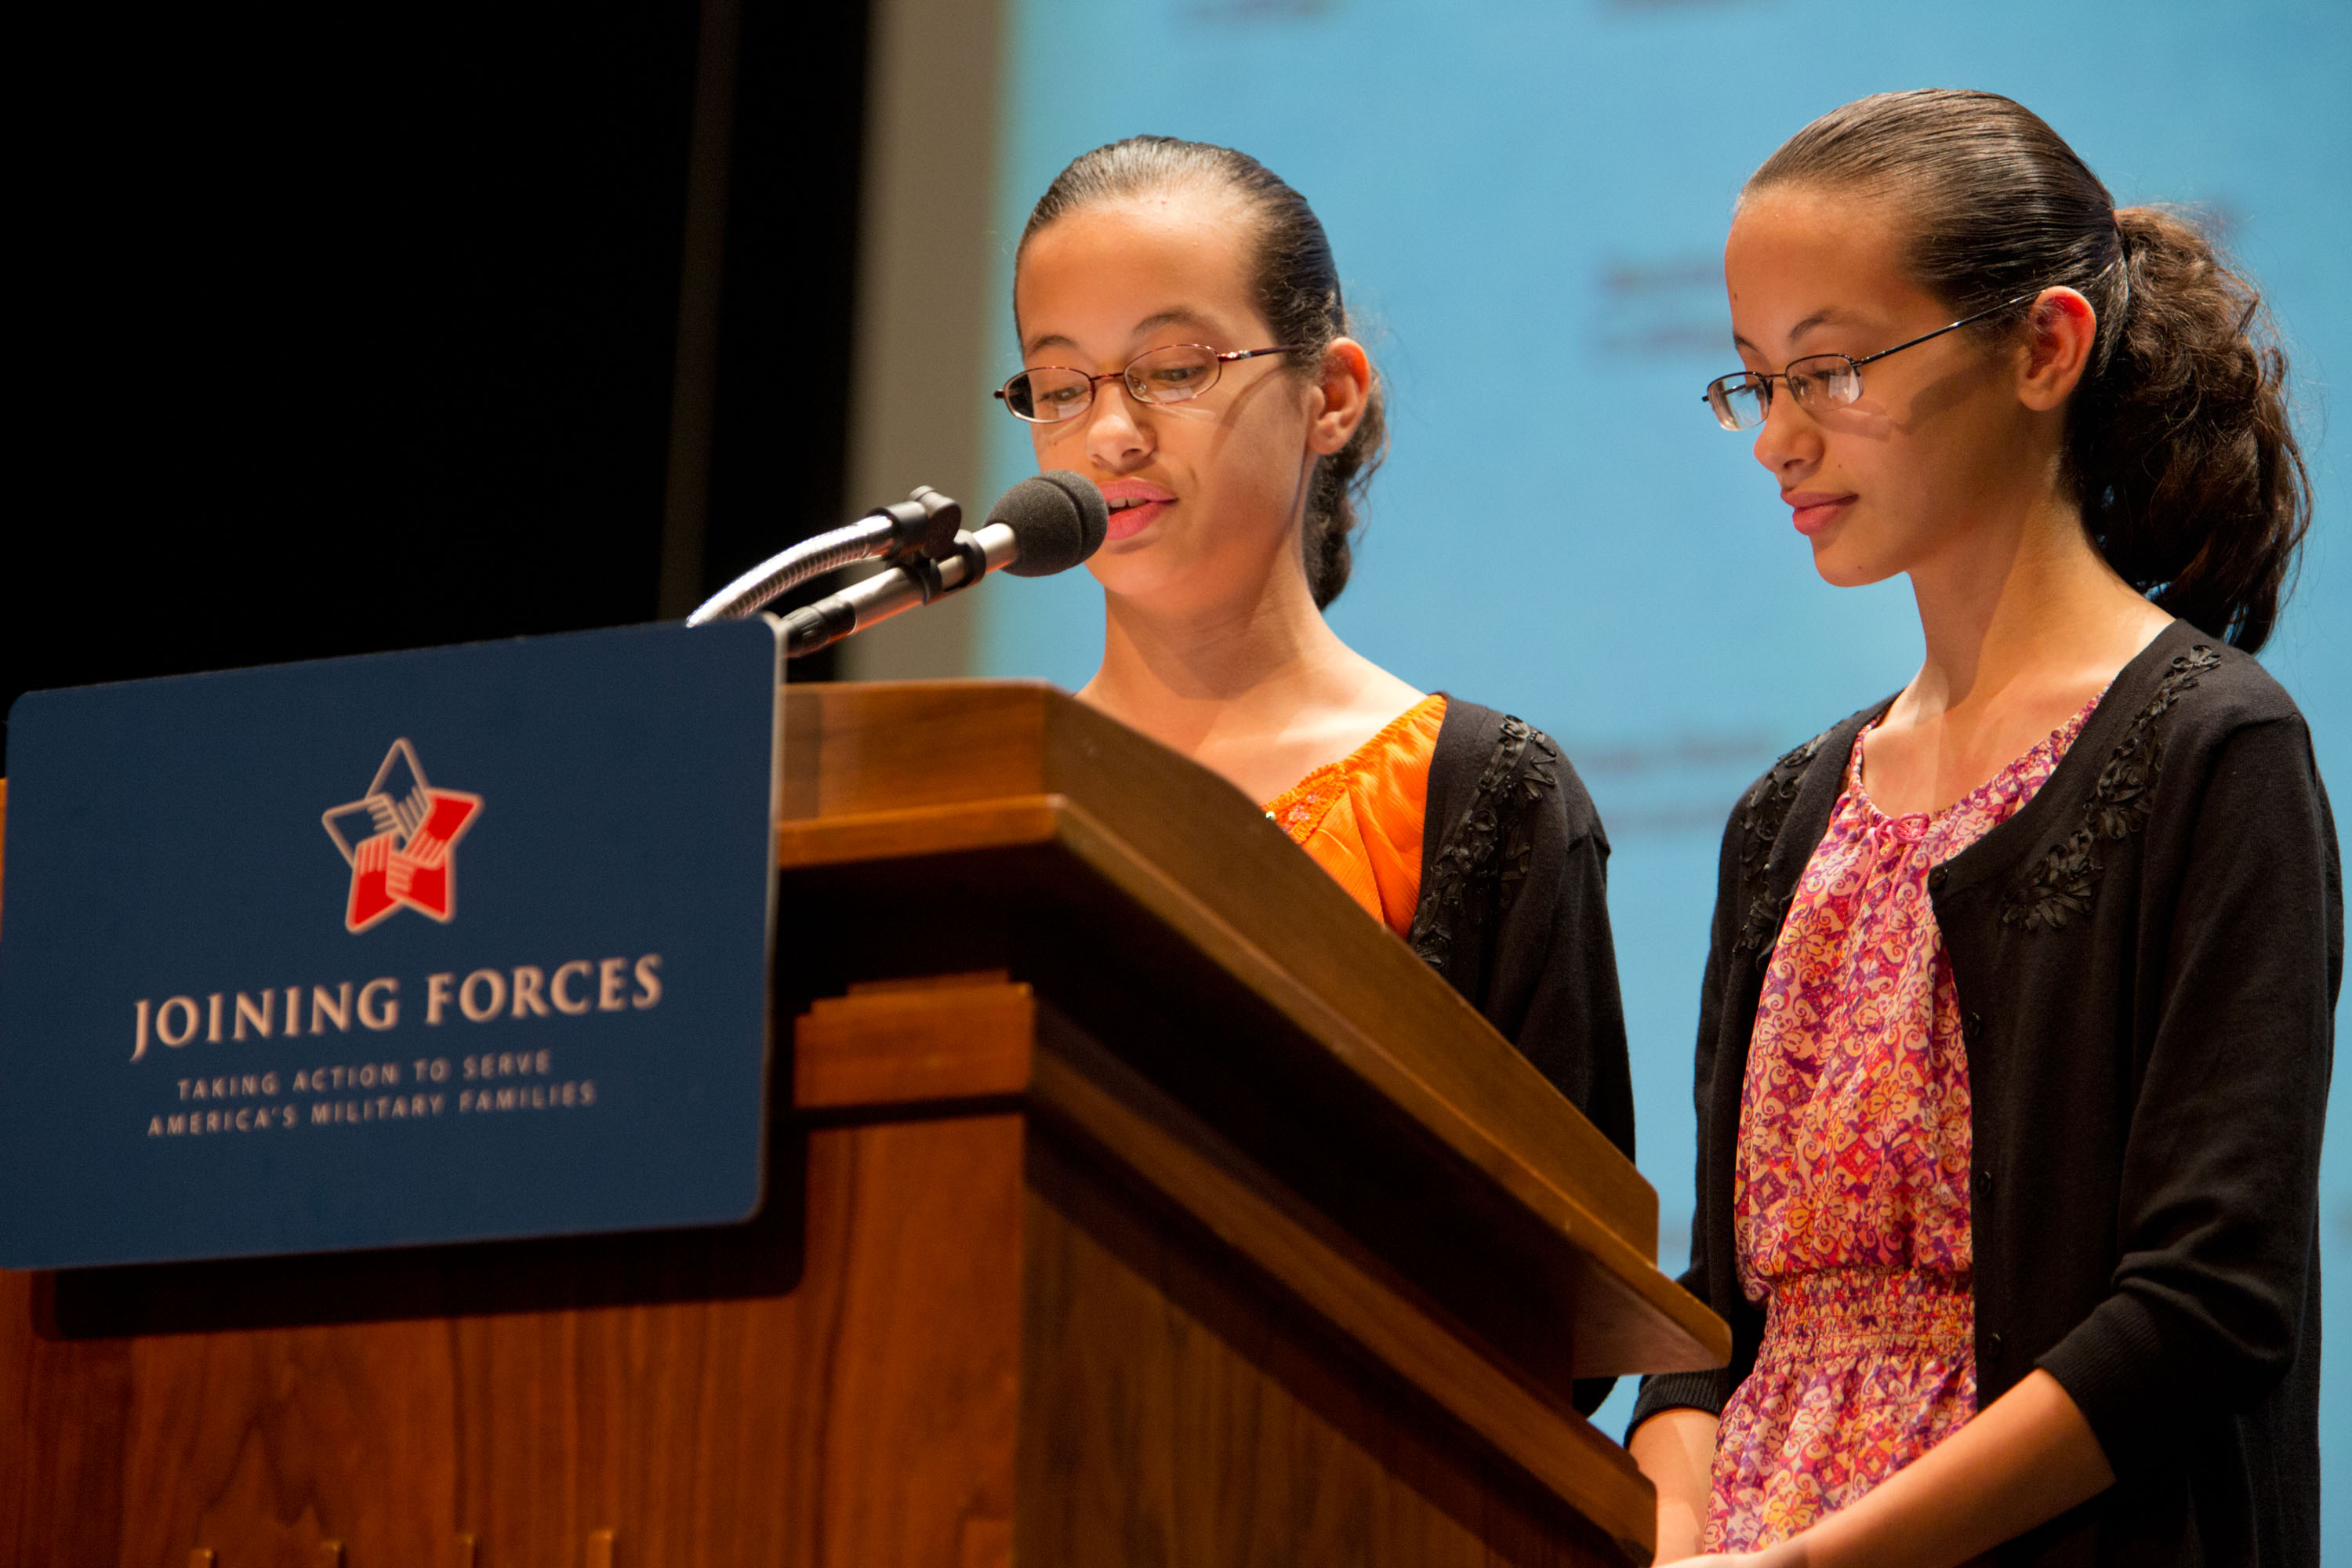 Felicity and Abigail Horan introduce Dr. Jill Biden at a Joining Forces event (October 3, 2012)